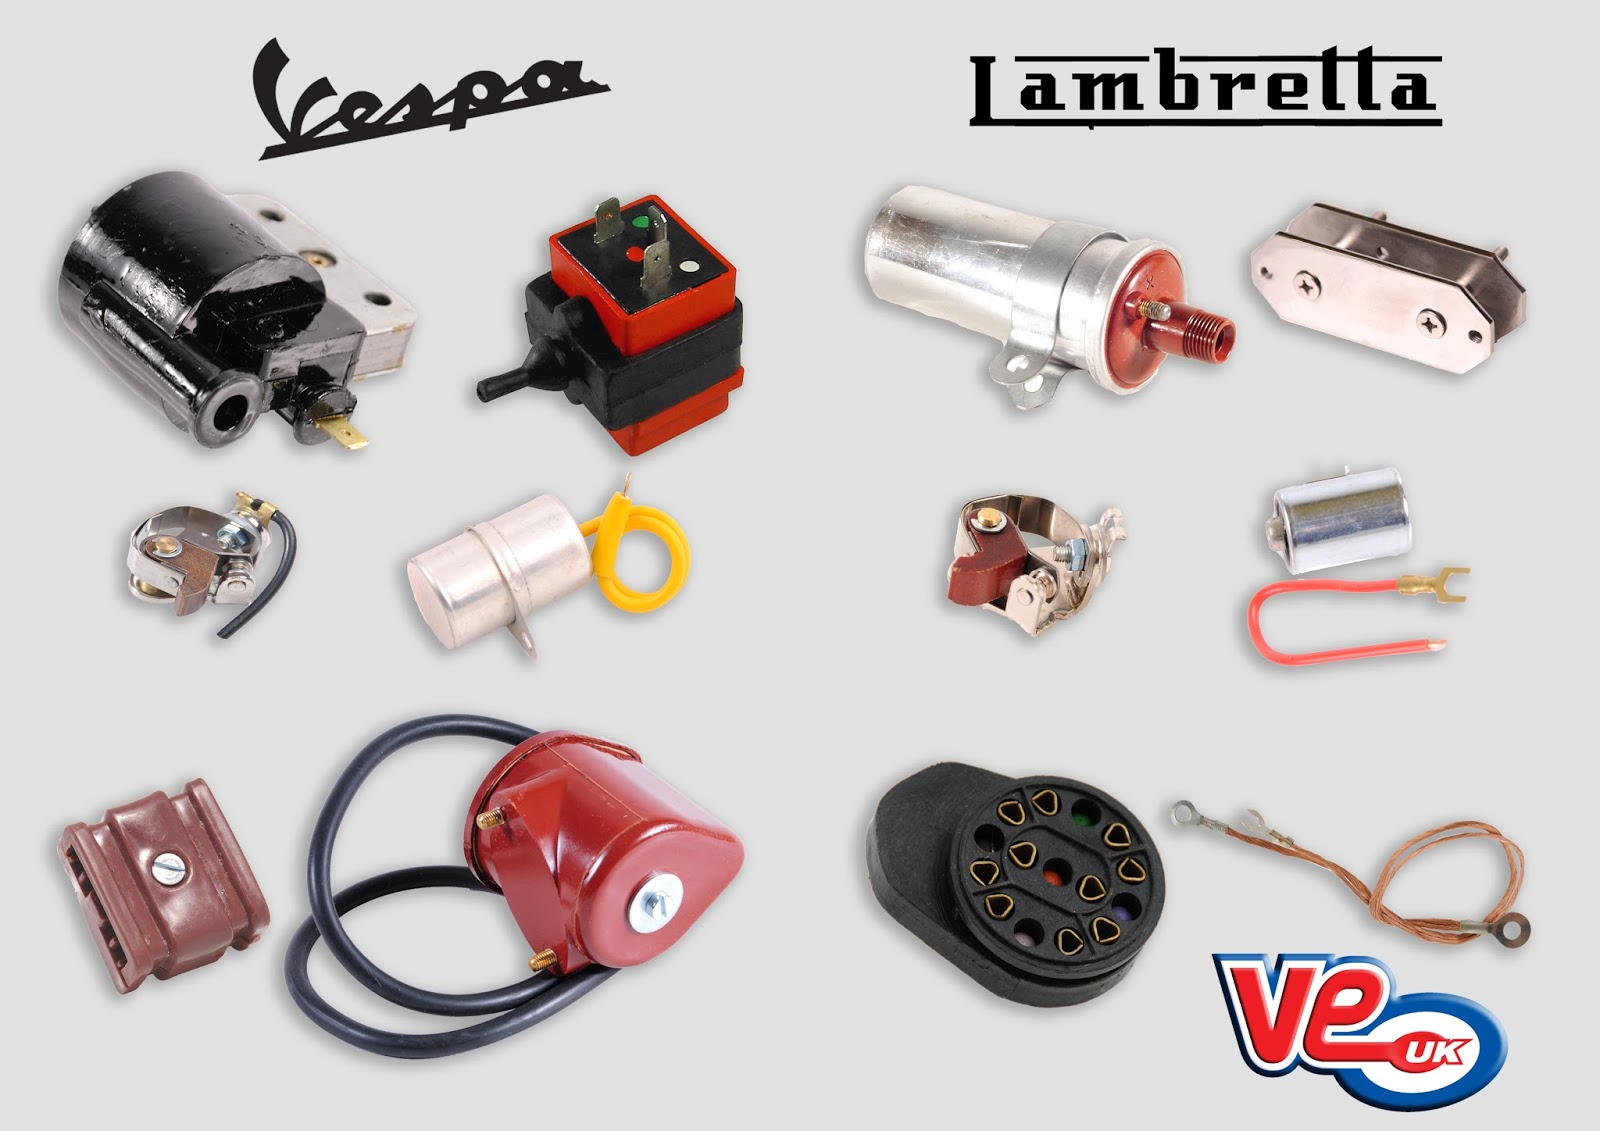 Classic Scooter Electrical Components